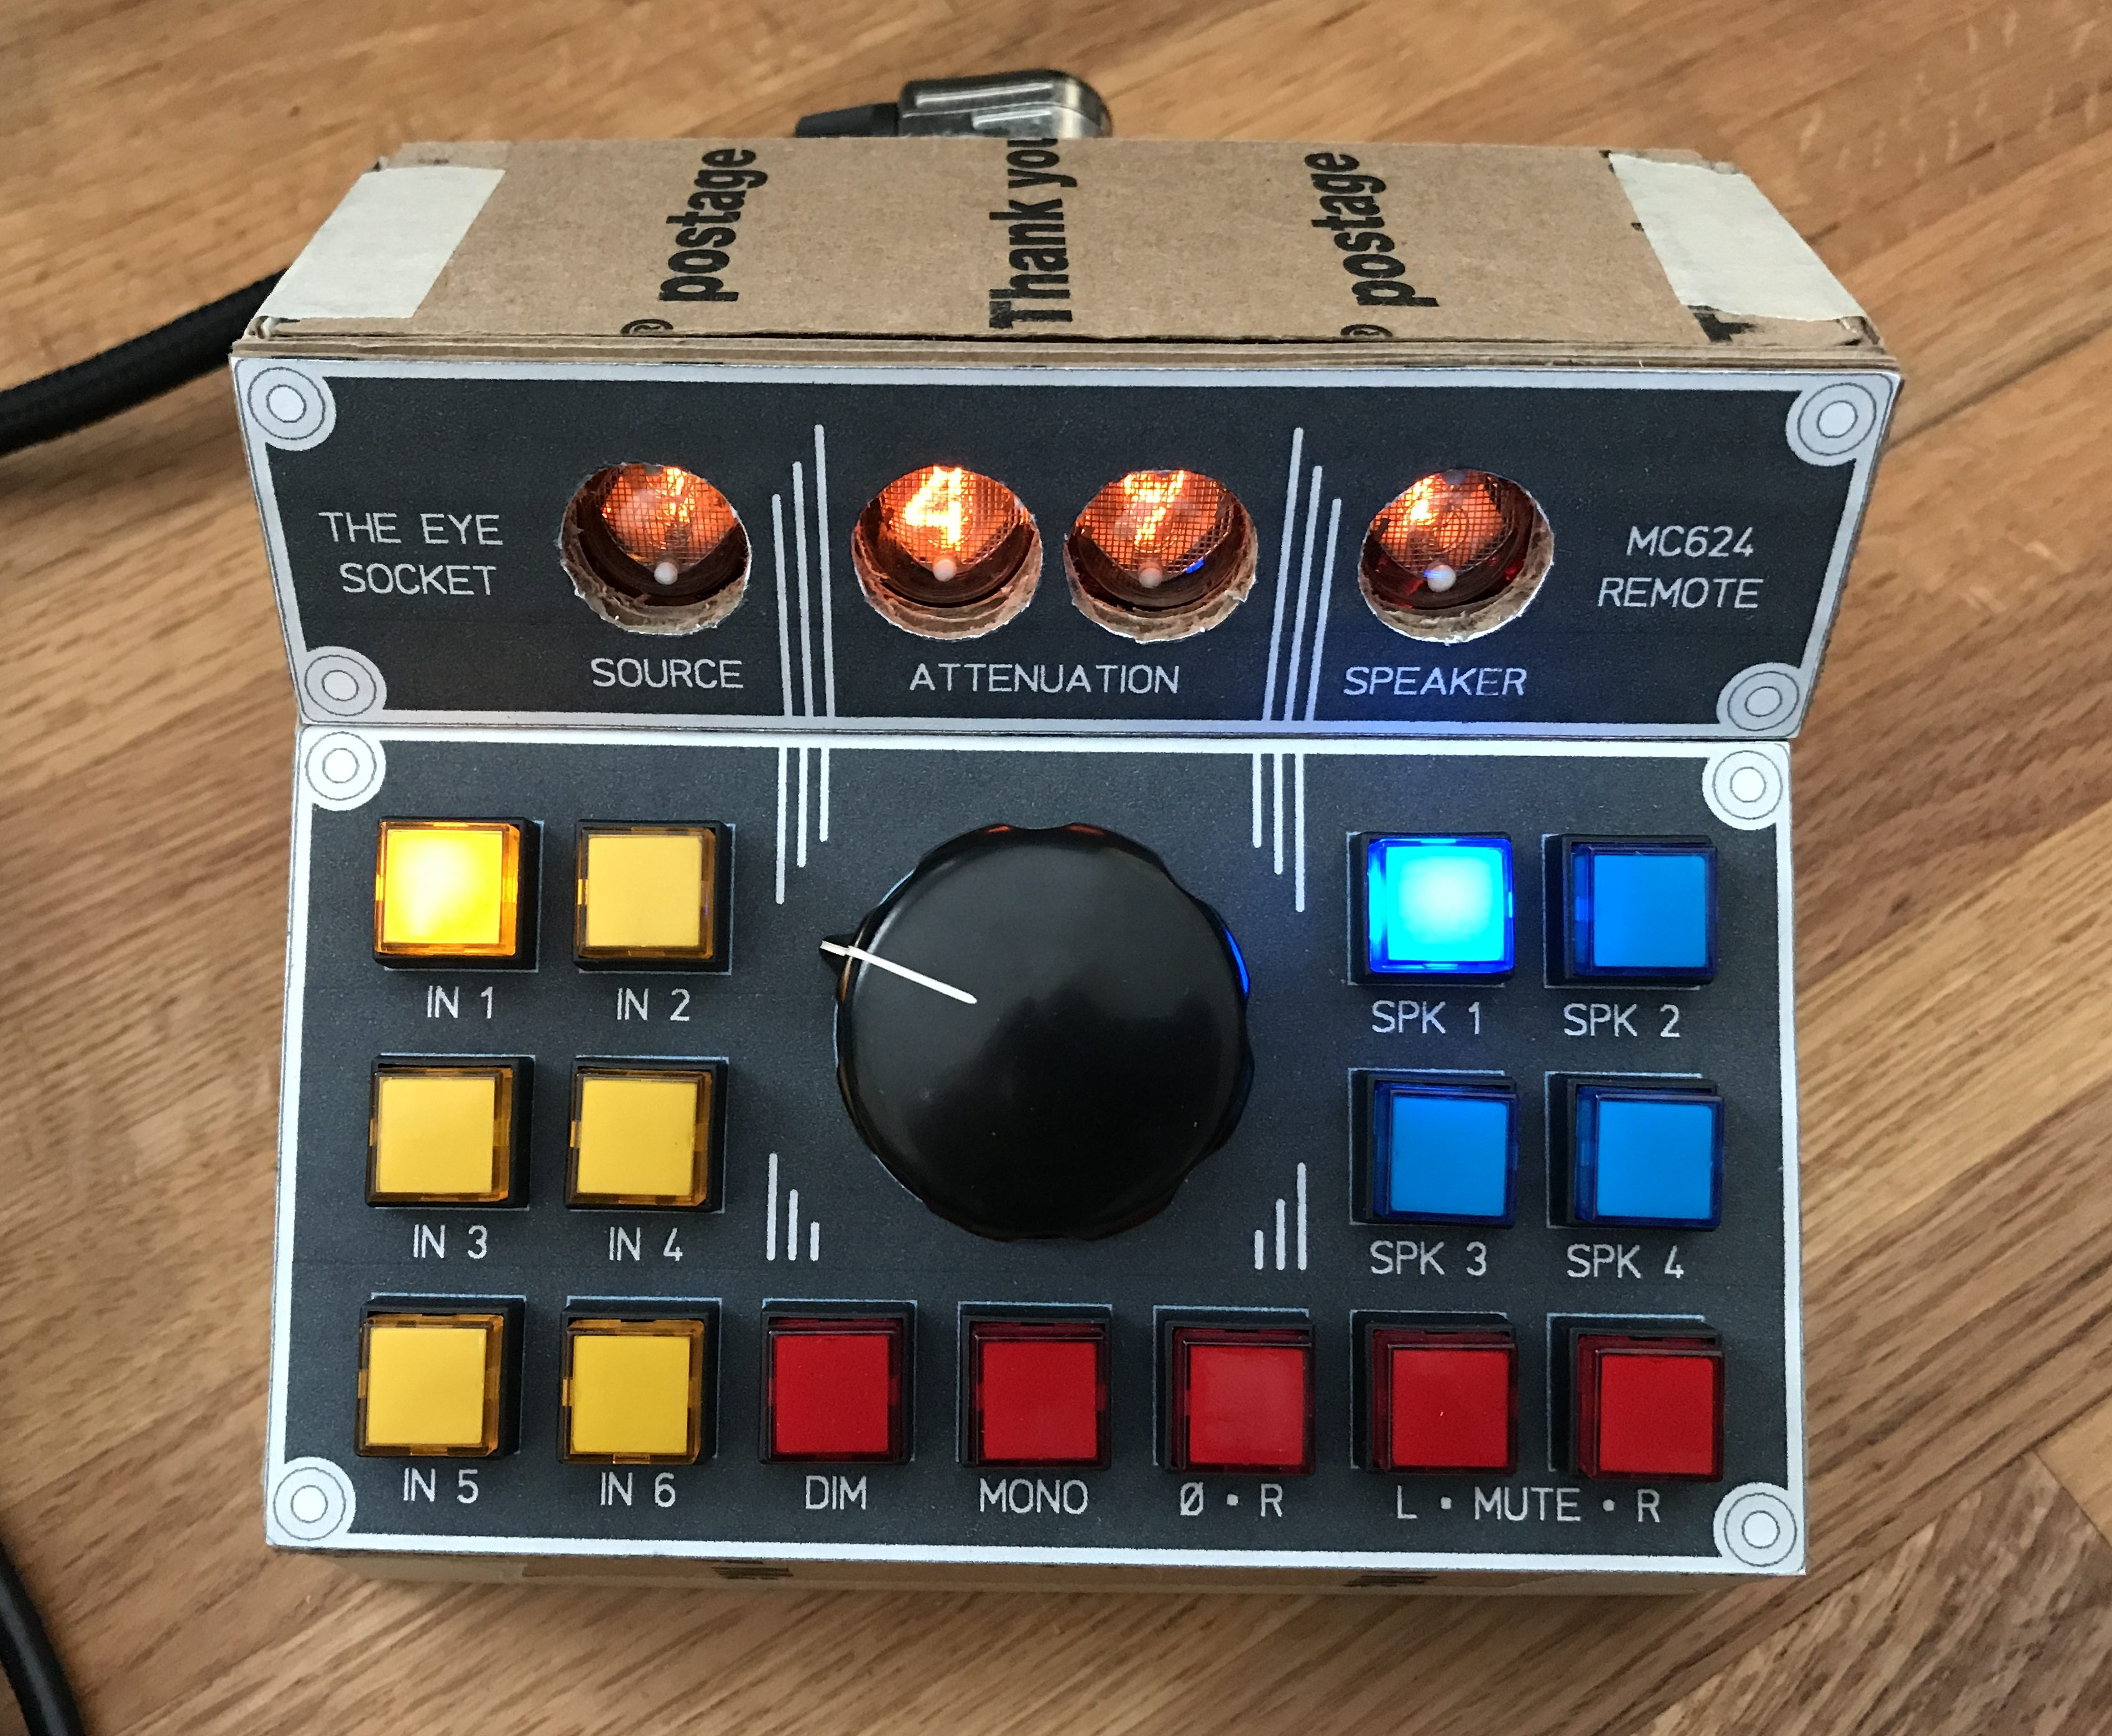 Making the MC624 Remote (in Exhausting Detail) – chad blinman dot com